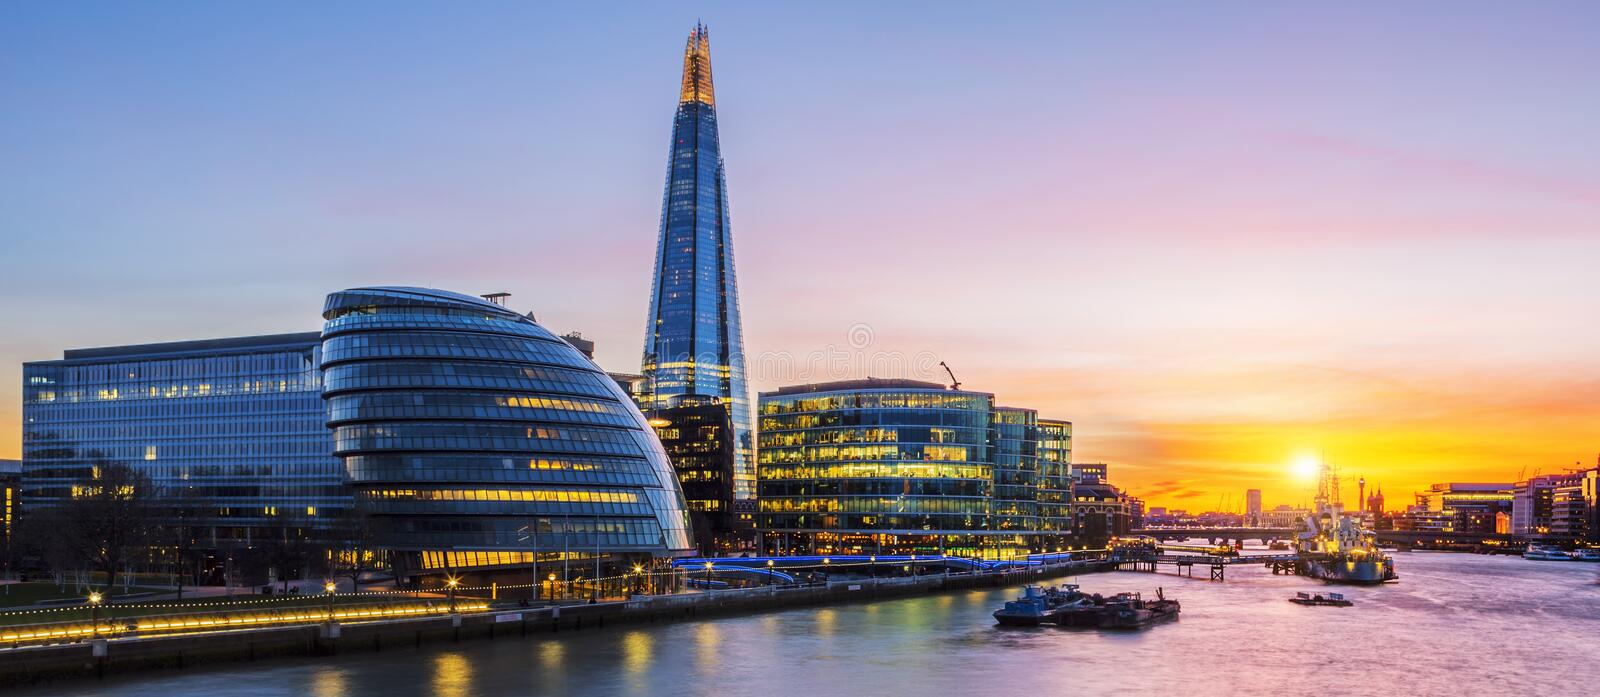 New London city hall at sunset. UK stock images